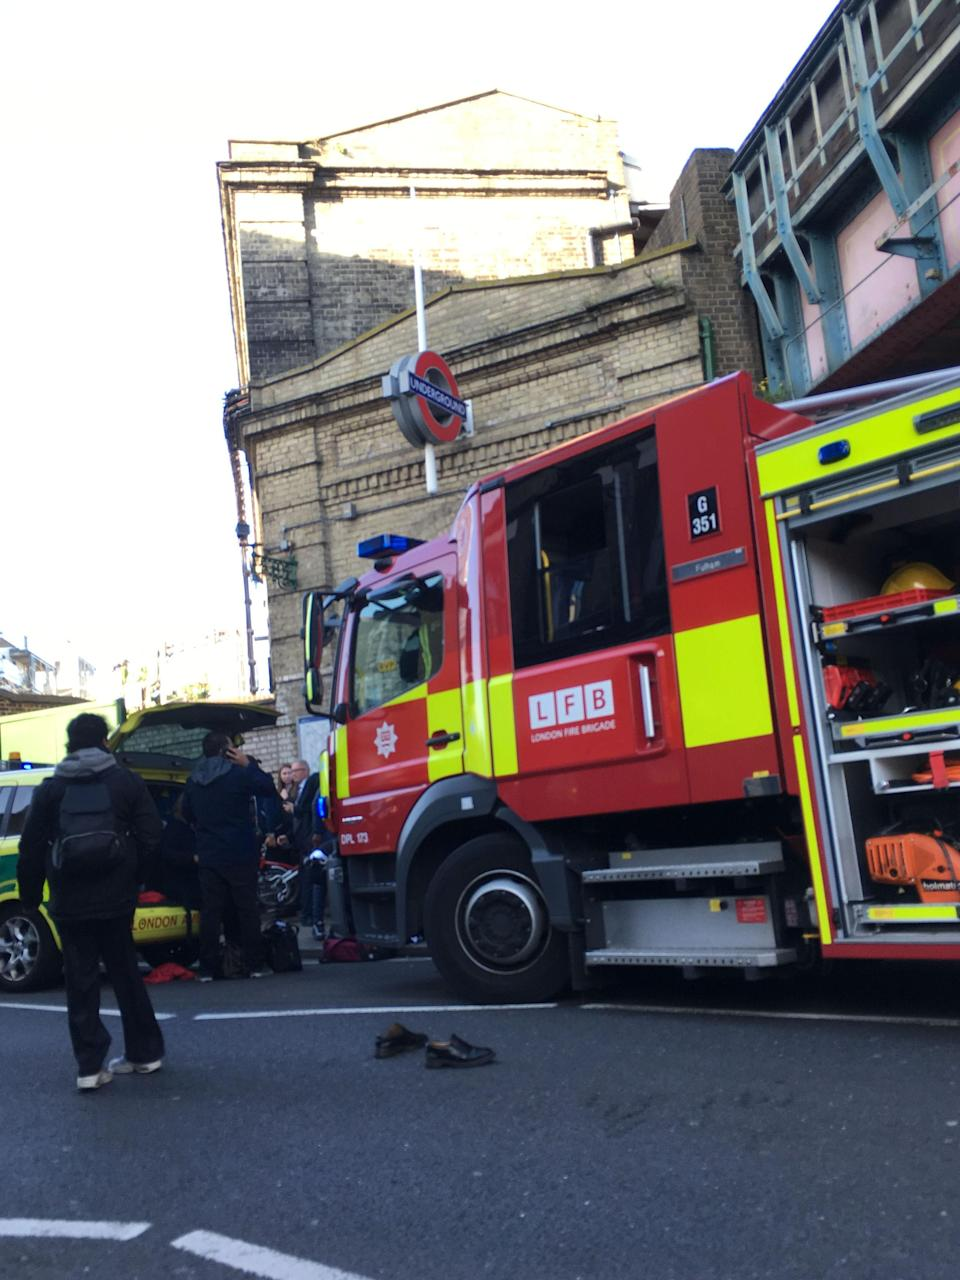 <p>Fire crews arrived at the scene within minutes, after reports that passengers had suffered facial burns from the blast. (PA) </p>